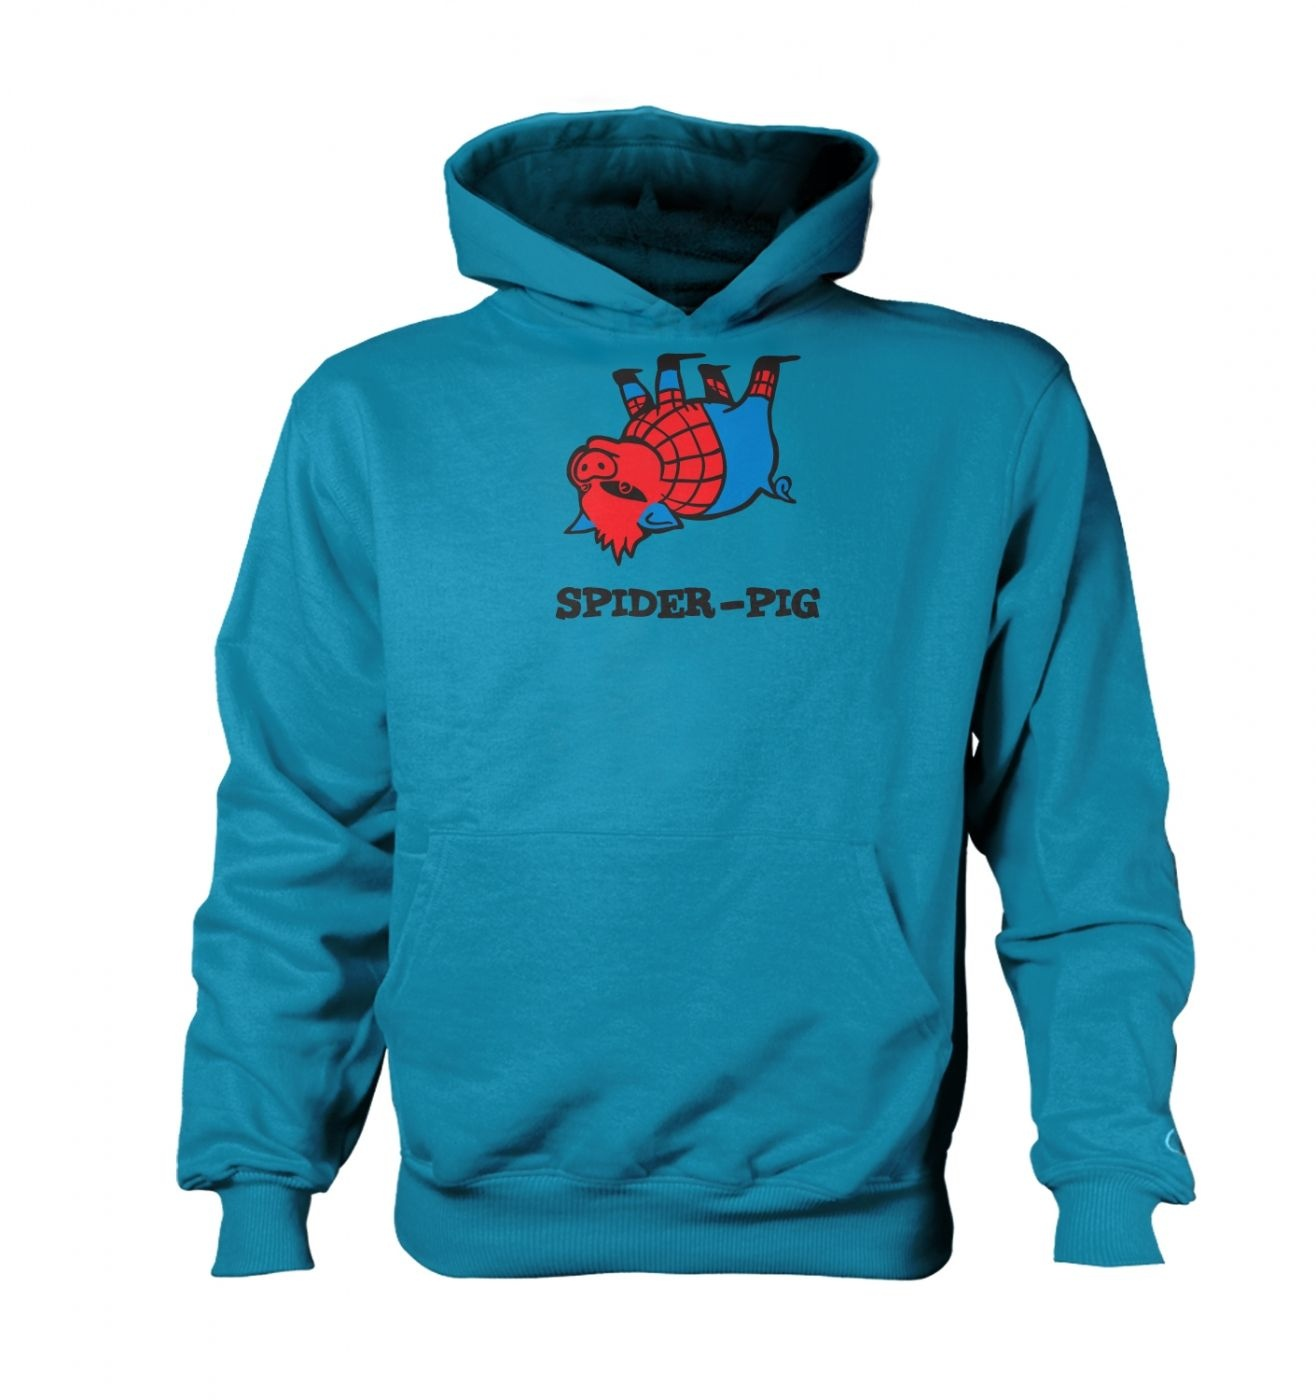 Spider Pig kids contrast hoodie  - Inspired by The Simpsons